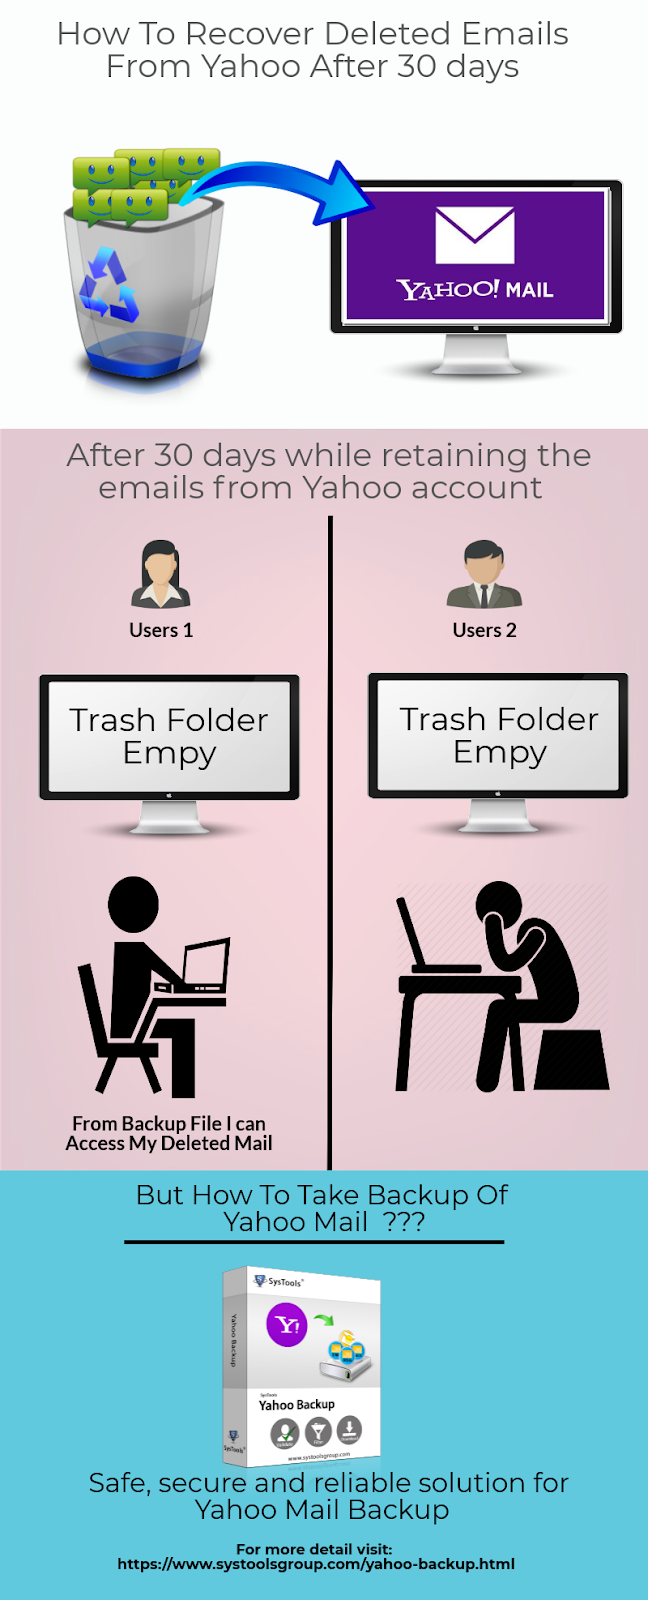 yahoo mail recover after 30 days - How To Get Back Emails That Were Deleted Yahoo